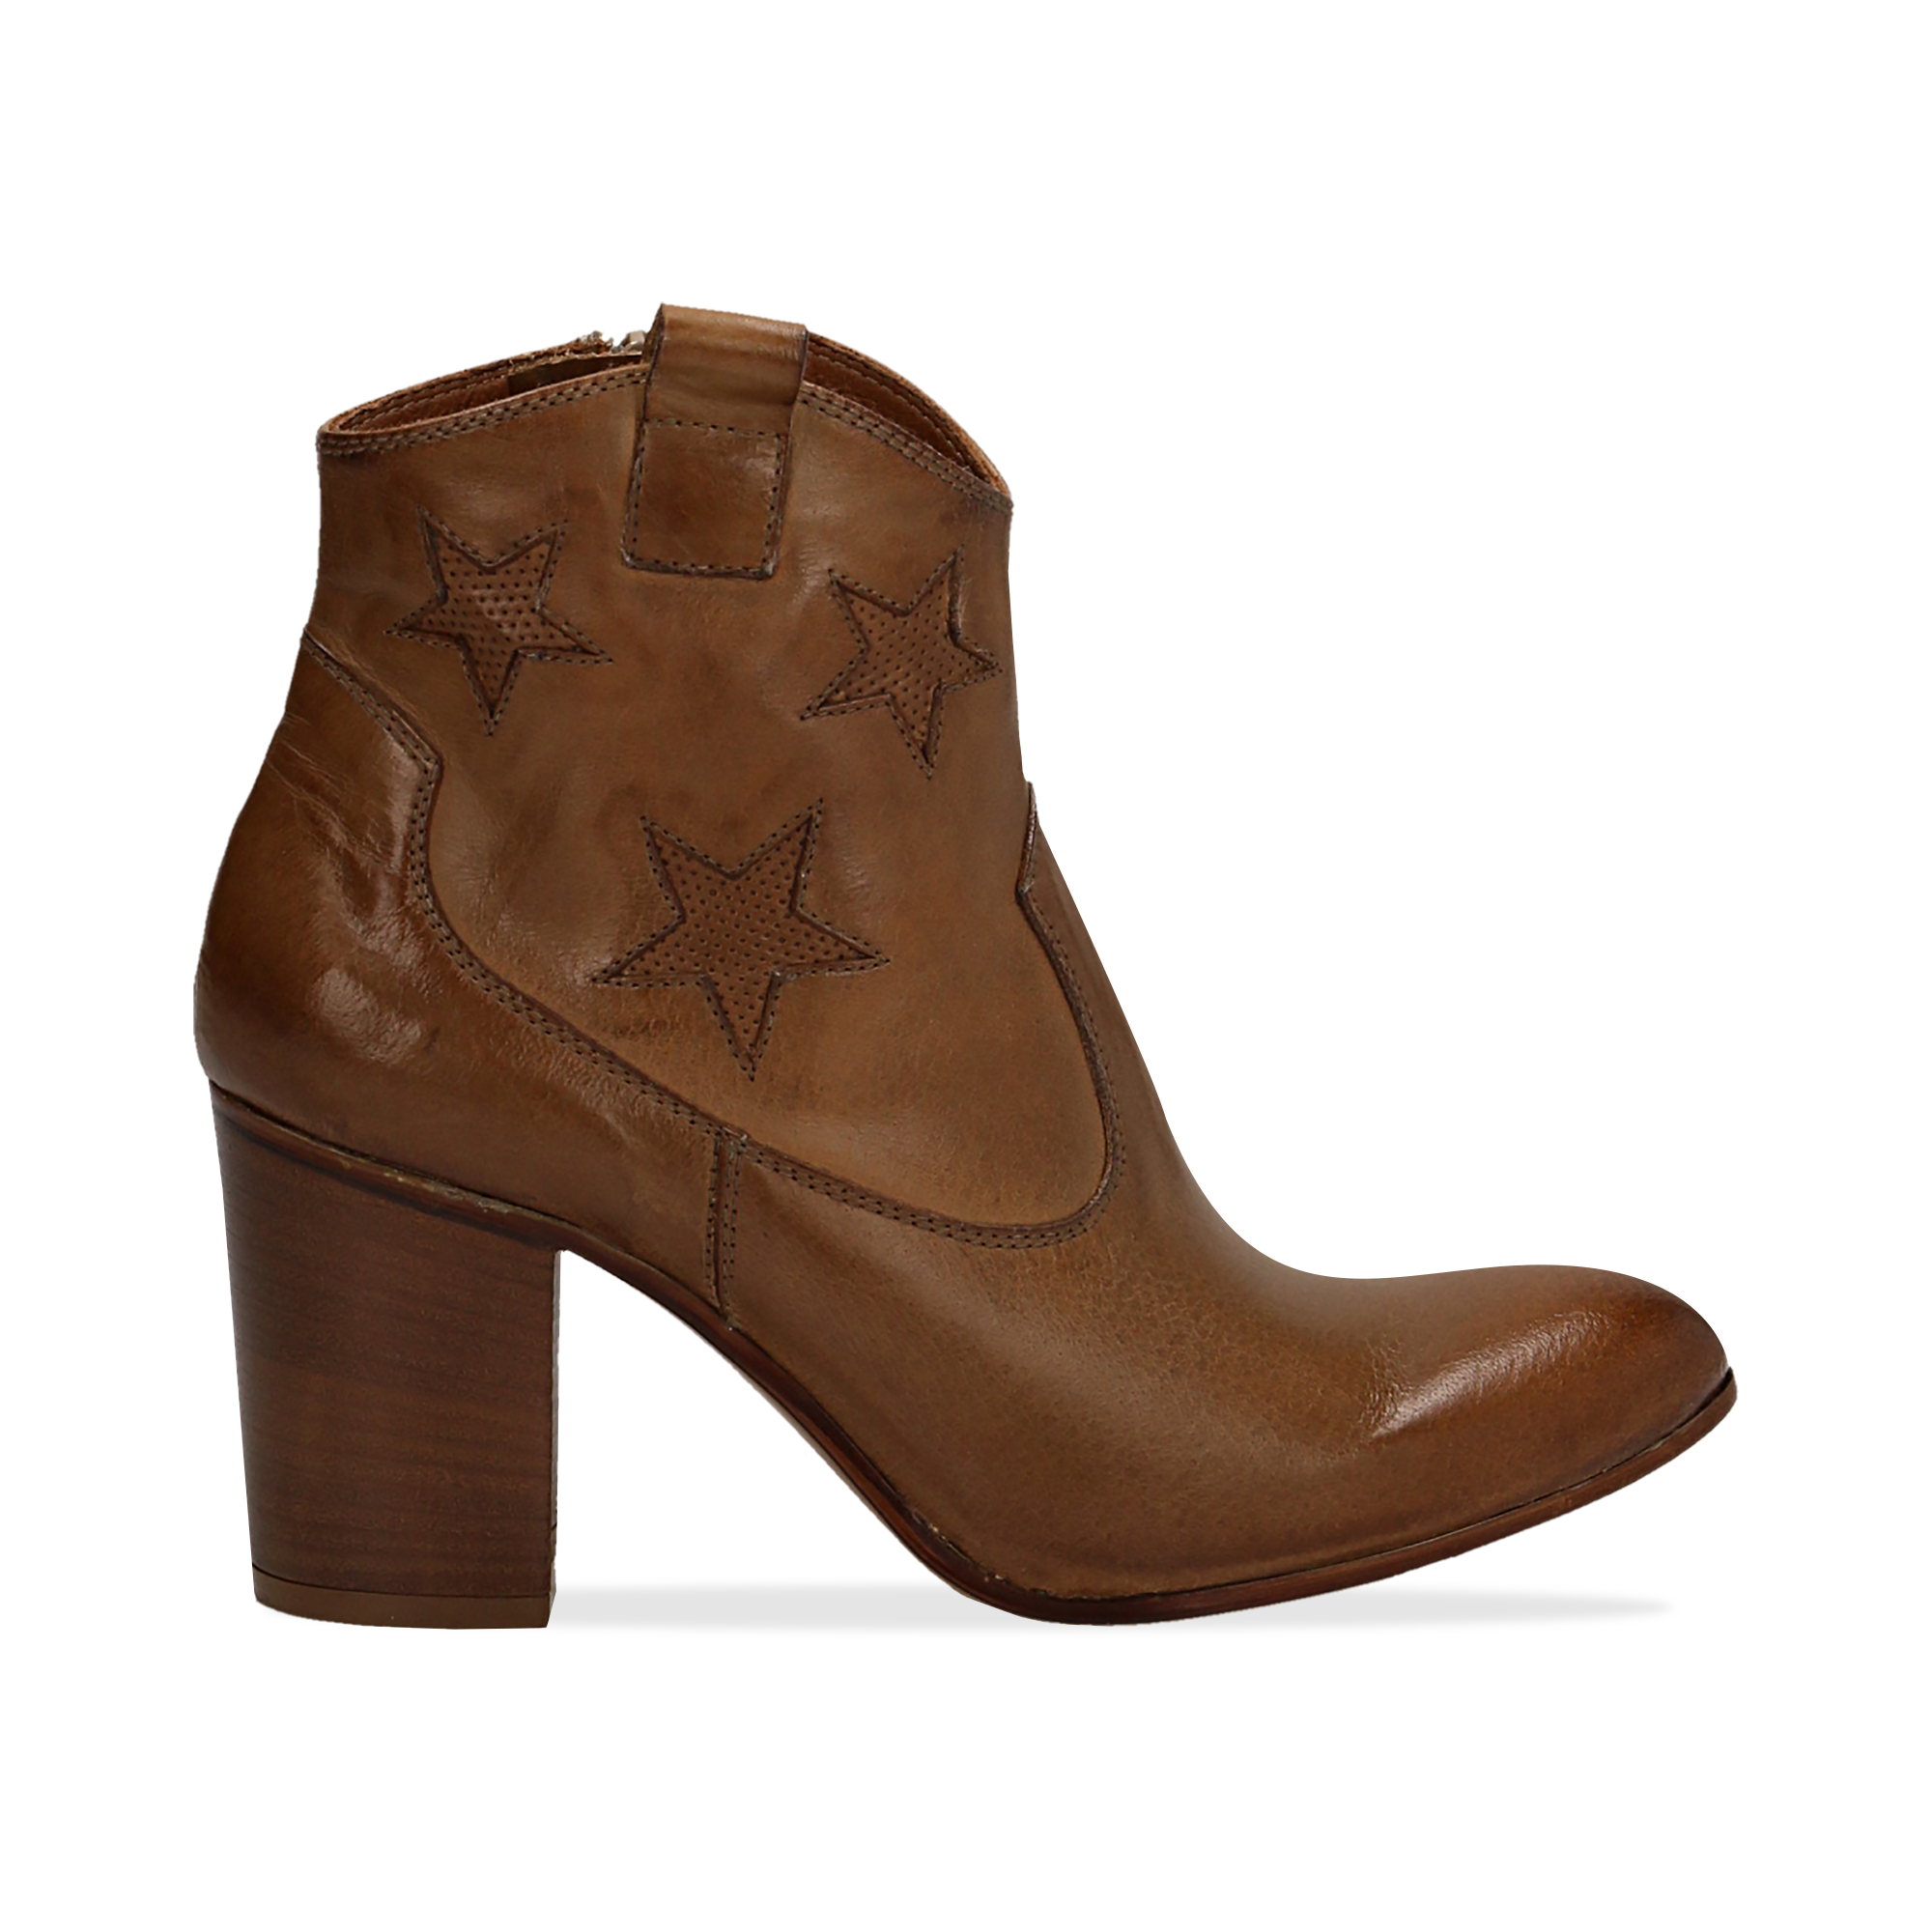 Ankle boots cuoio in pelle con stelle ricamate, tacco 7,50 cm